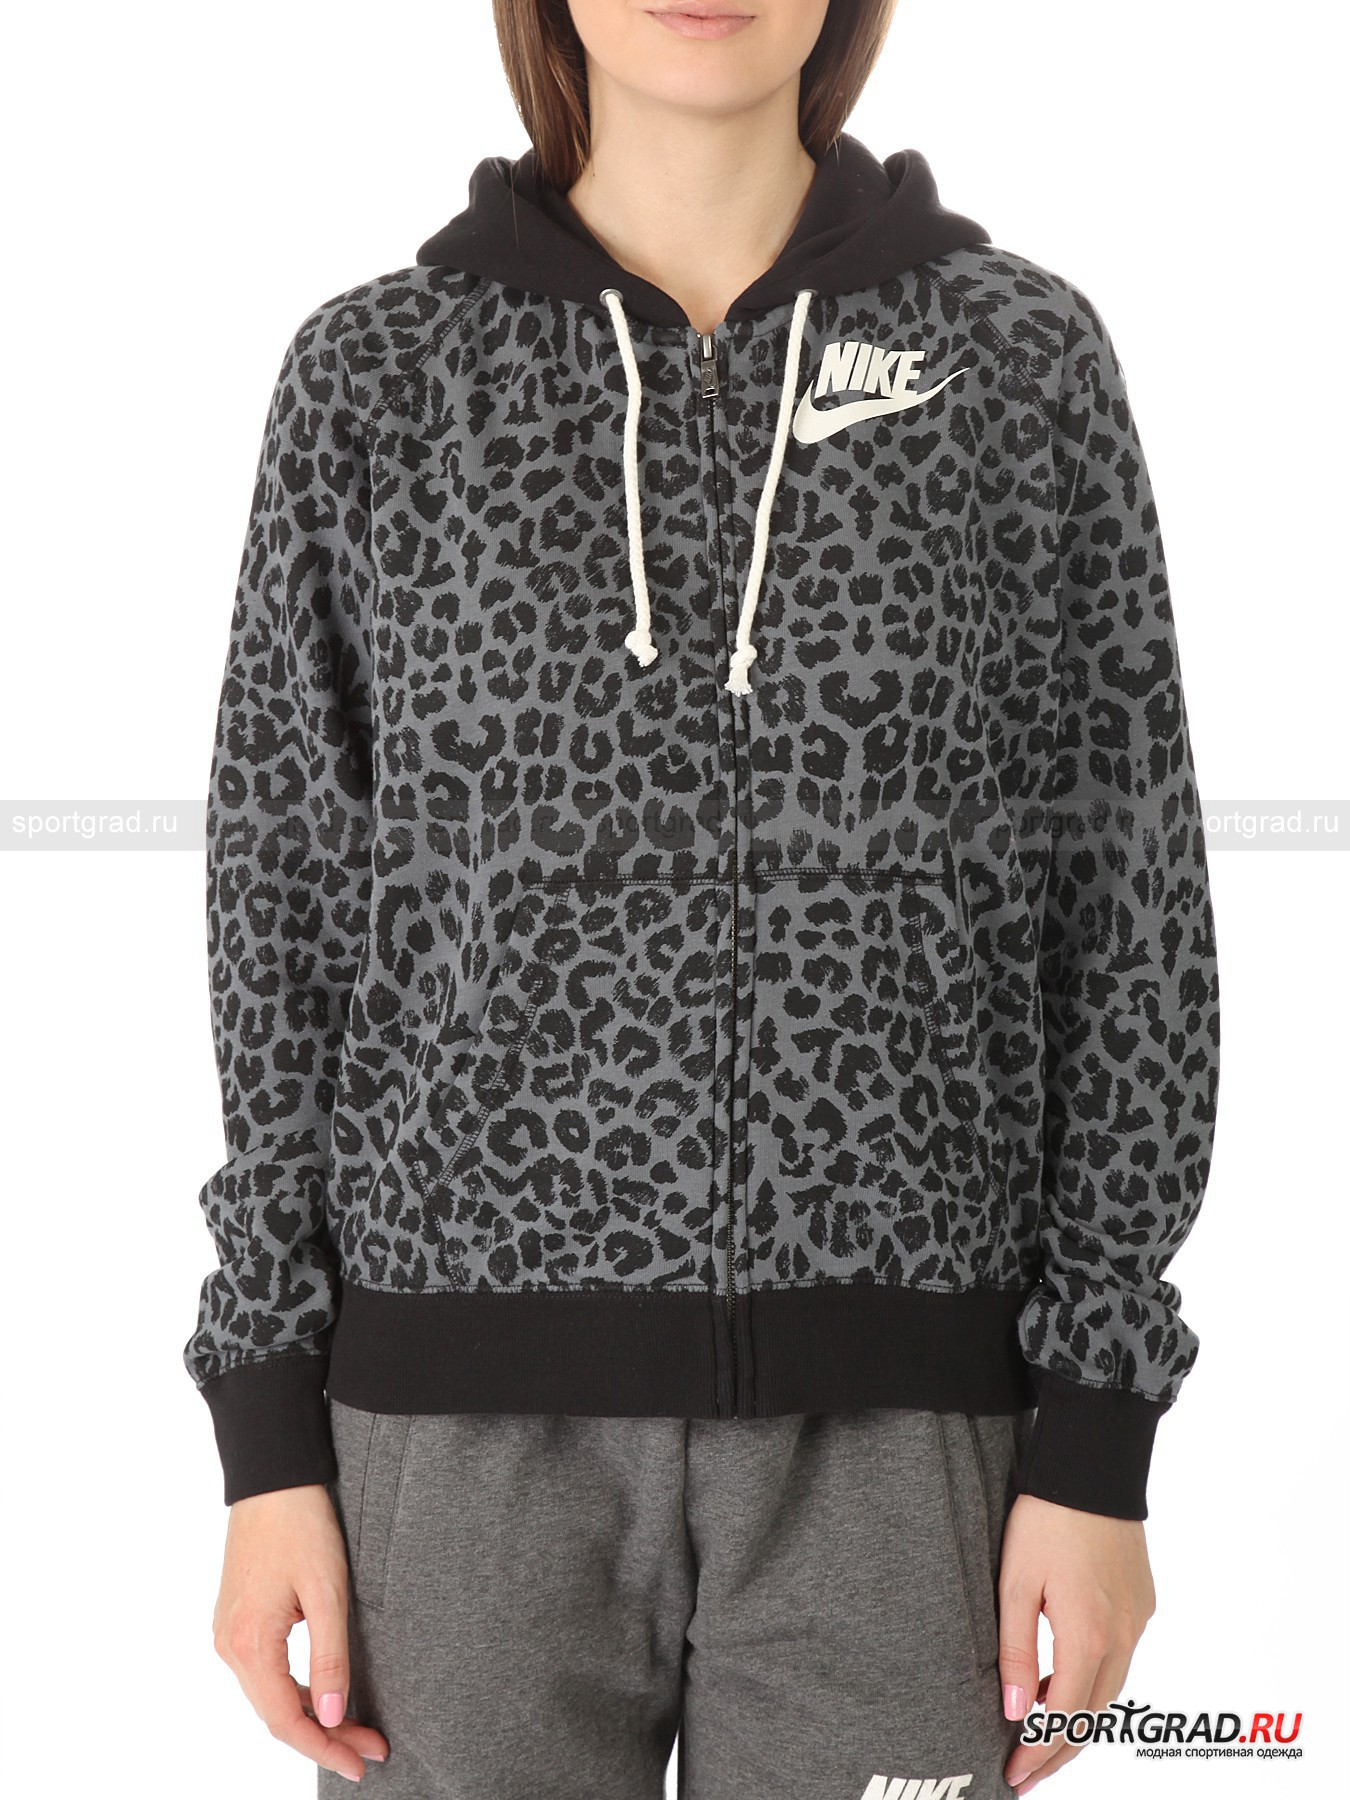 professional sale new photos official shop Толстовка женская NIKE RALLY FZ HOODY-CHEETAH NIKE с ...